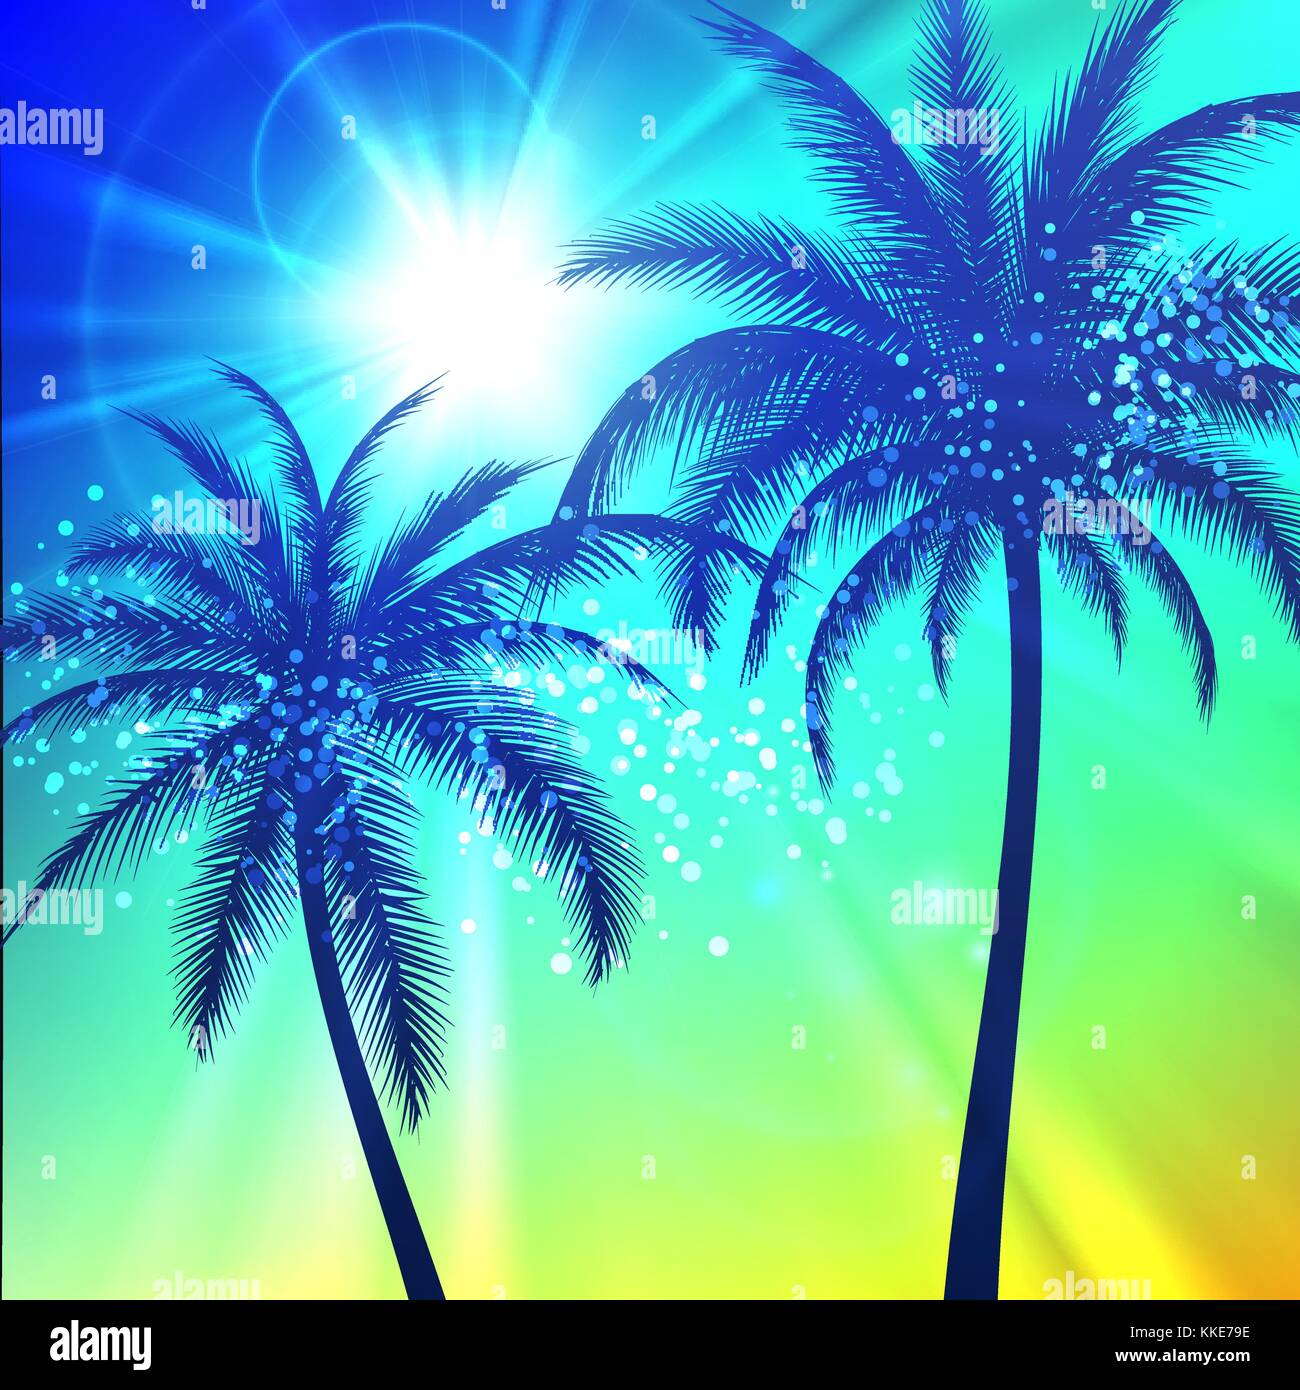 Summer background with palm silhouettes - Stock Vector